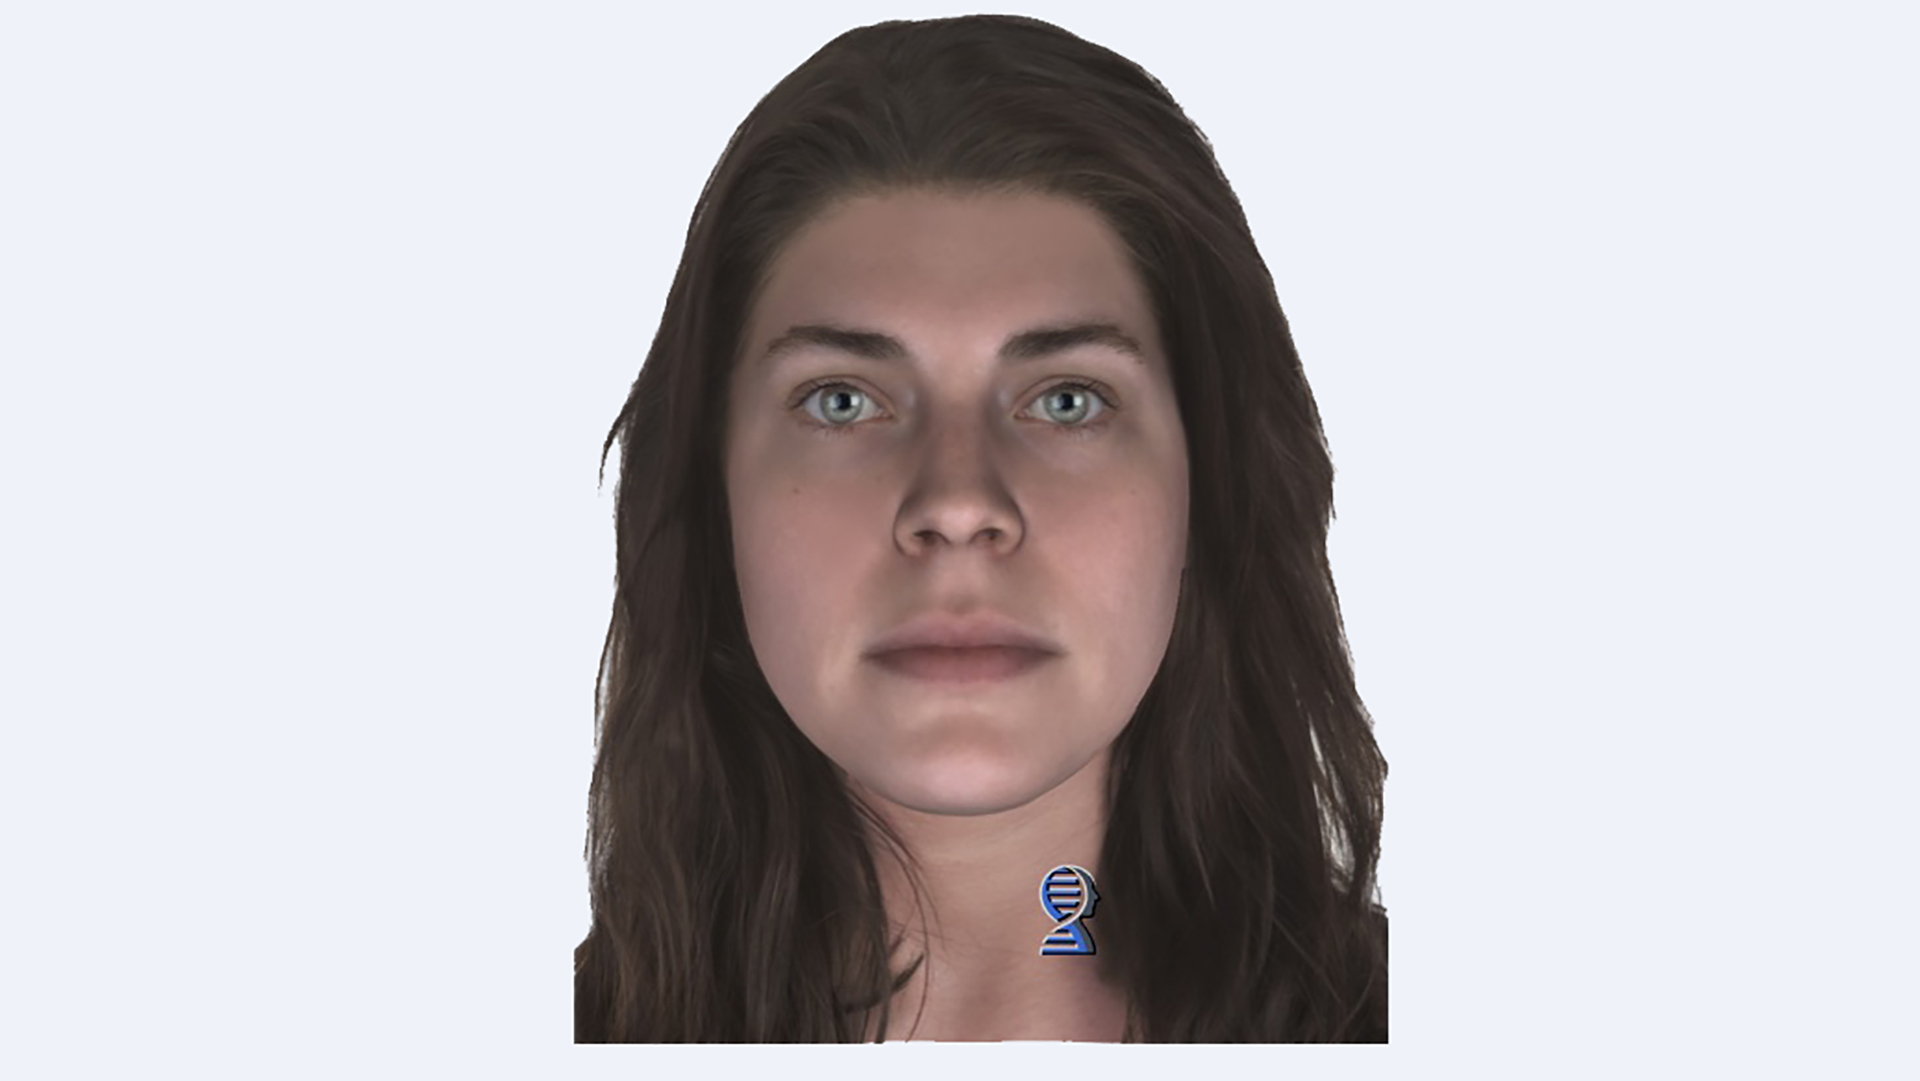 Phenotyping: How a DNA 'Snapshot' Can Create the Face of an Unknown Criminal